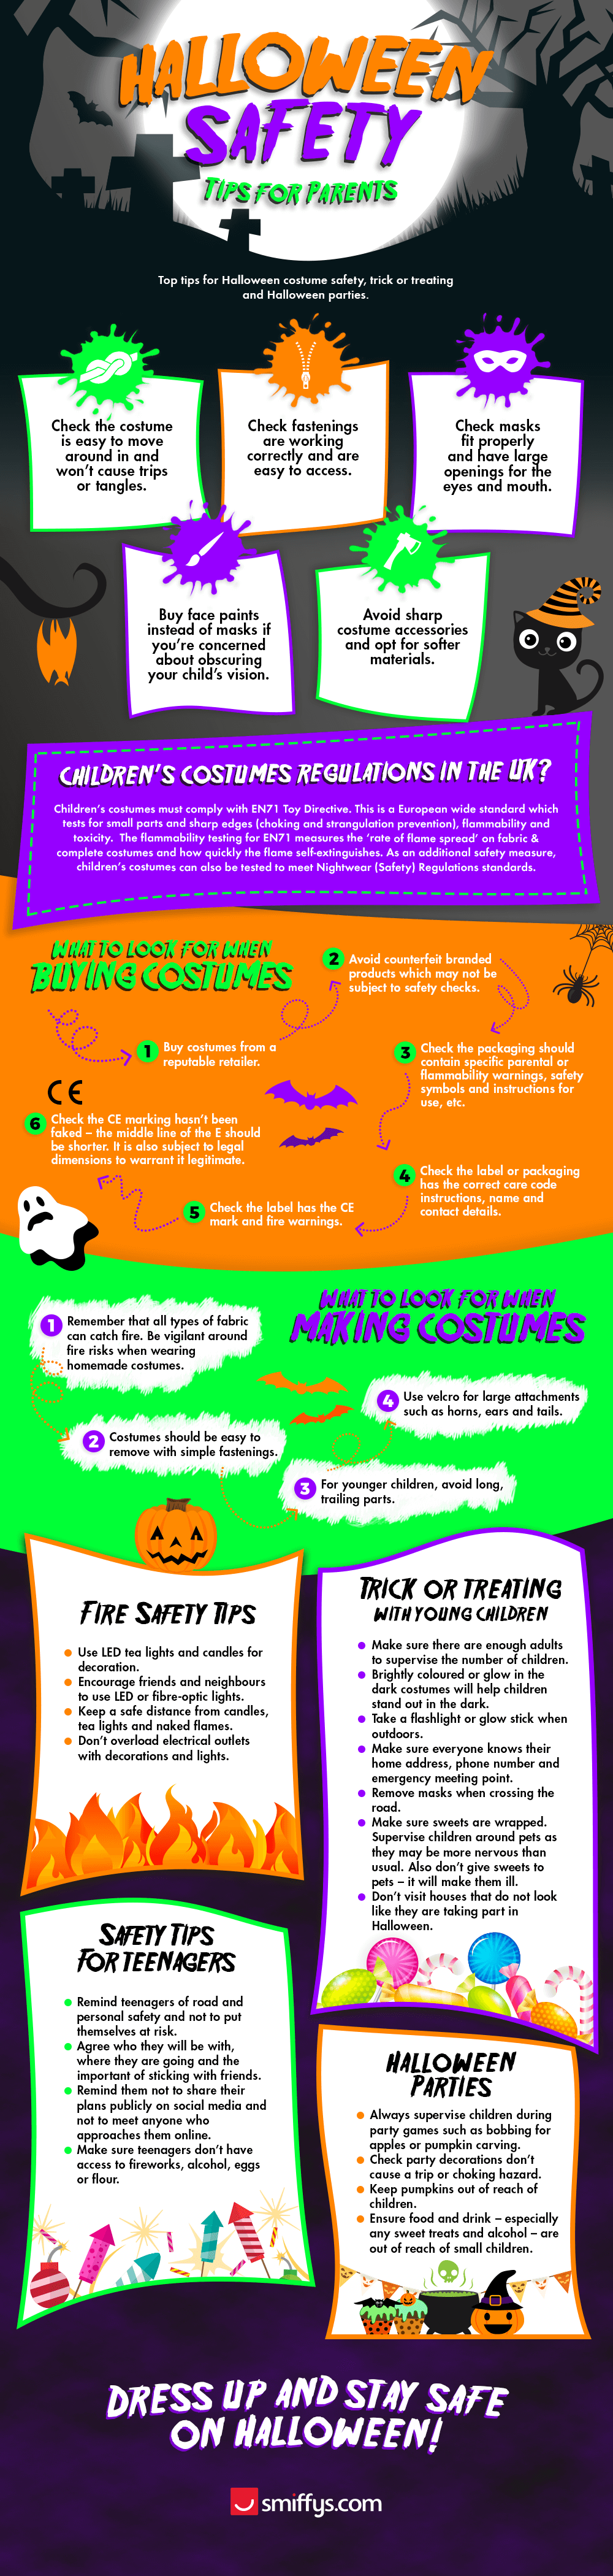 halloween-safety-tips-for-parents-infographic